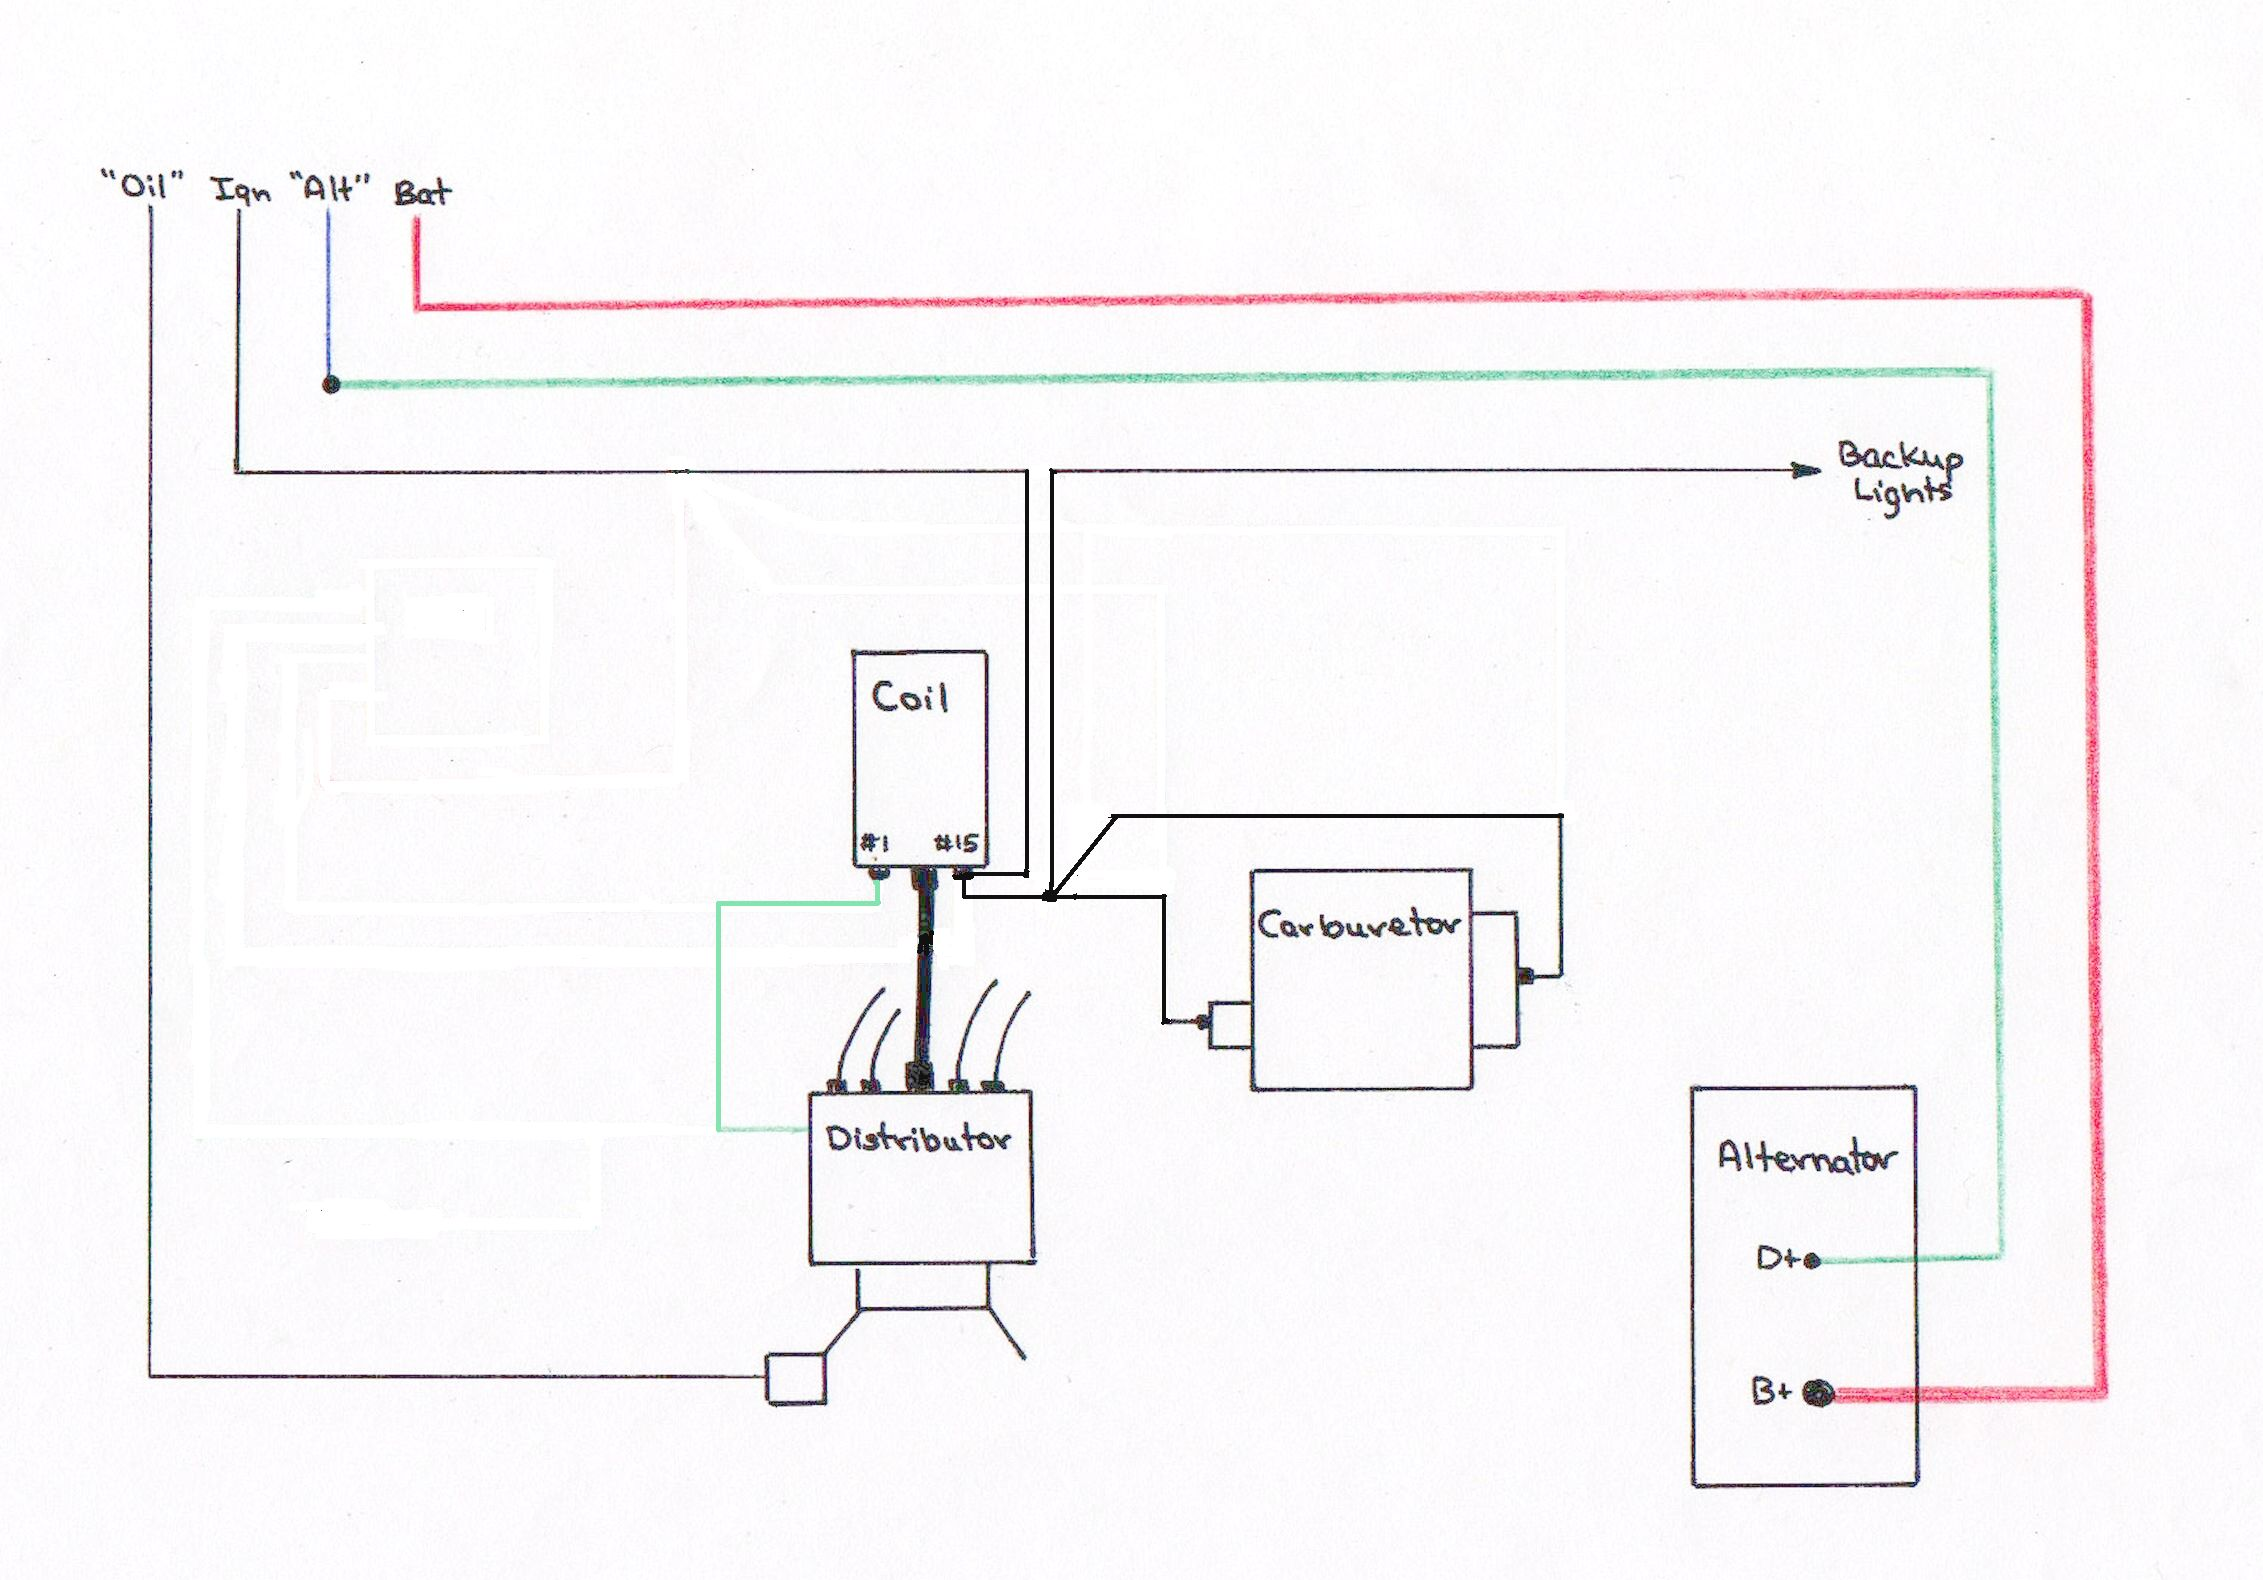 handdrawn_schematic alternator wiring wiring diagram for an alternator at gsmx.co